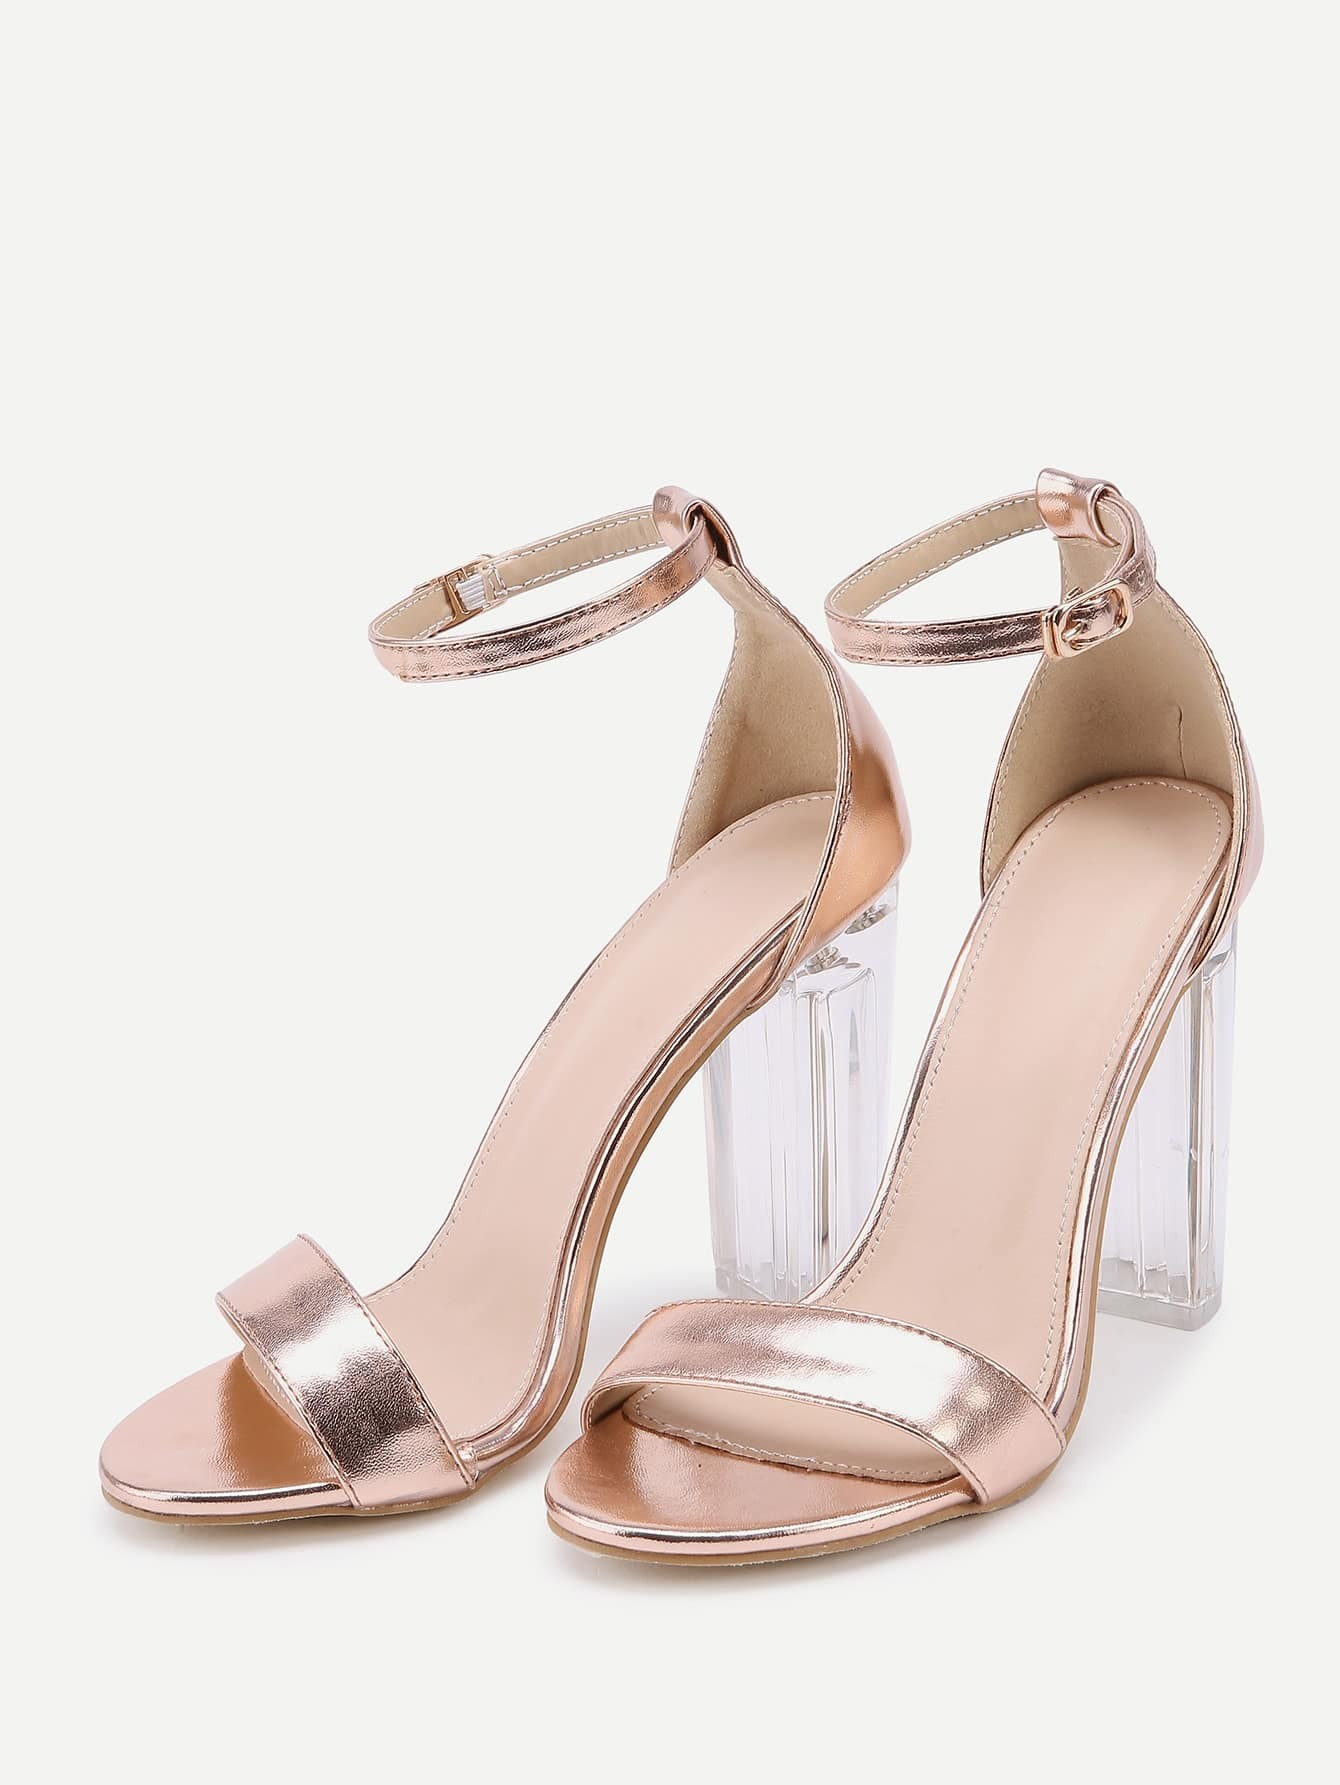 high heel shoe chair value city stool protector rose gold lucite sandals shein sheinside